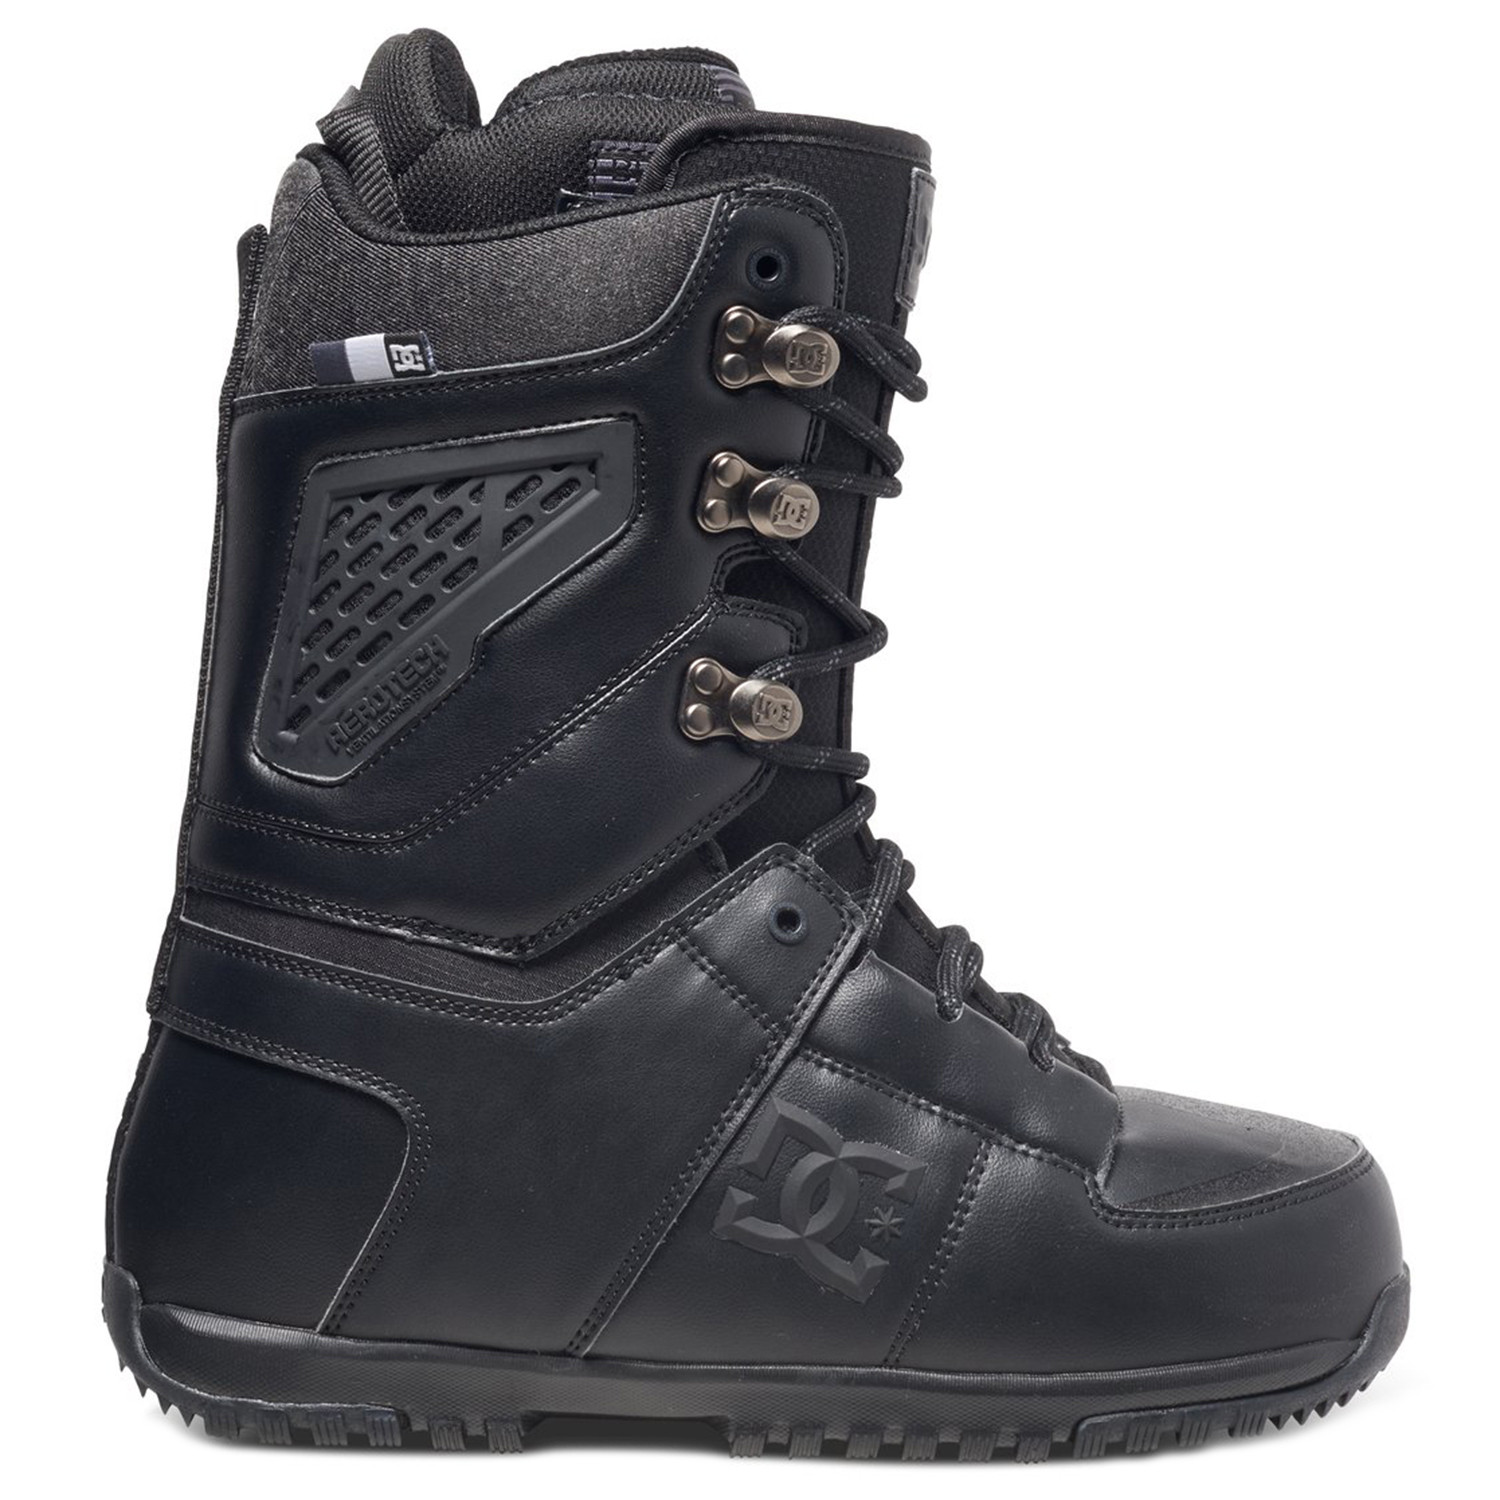 Lynx Boots Snowboard Homme